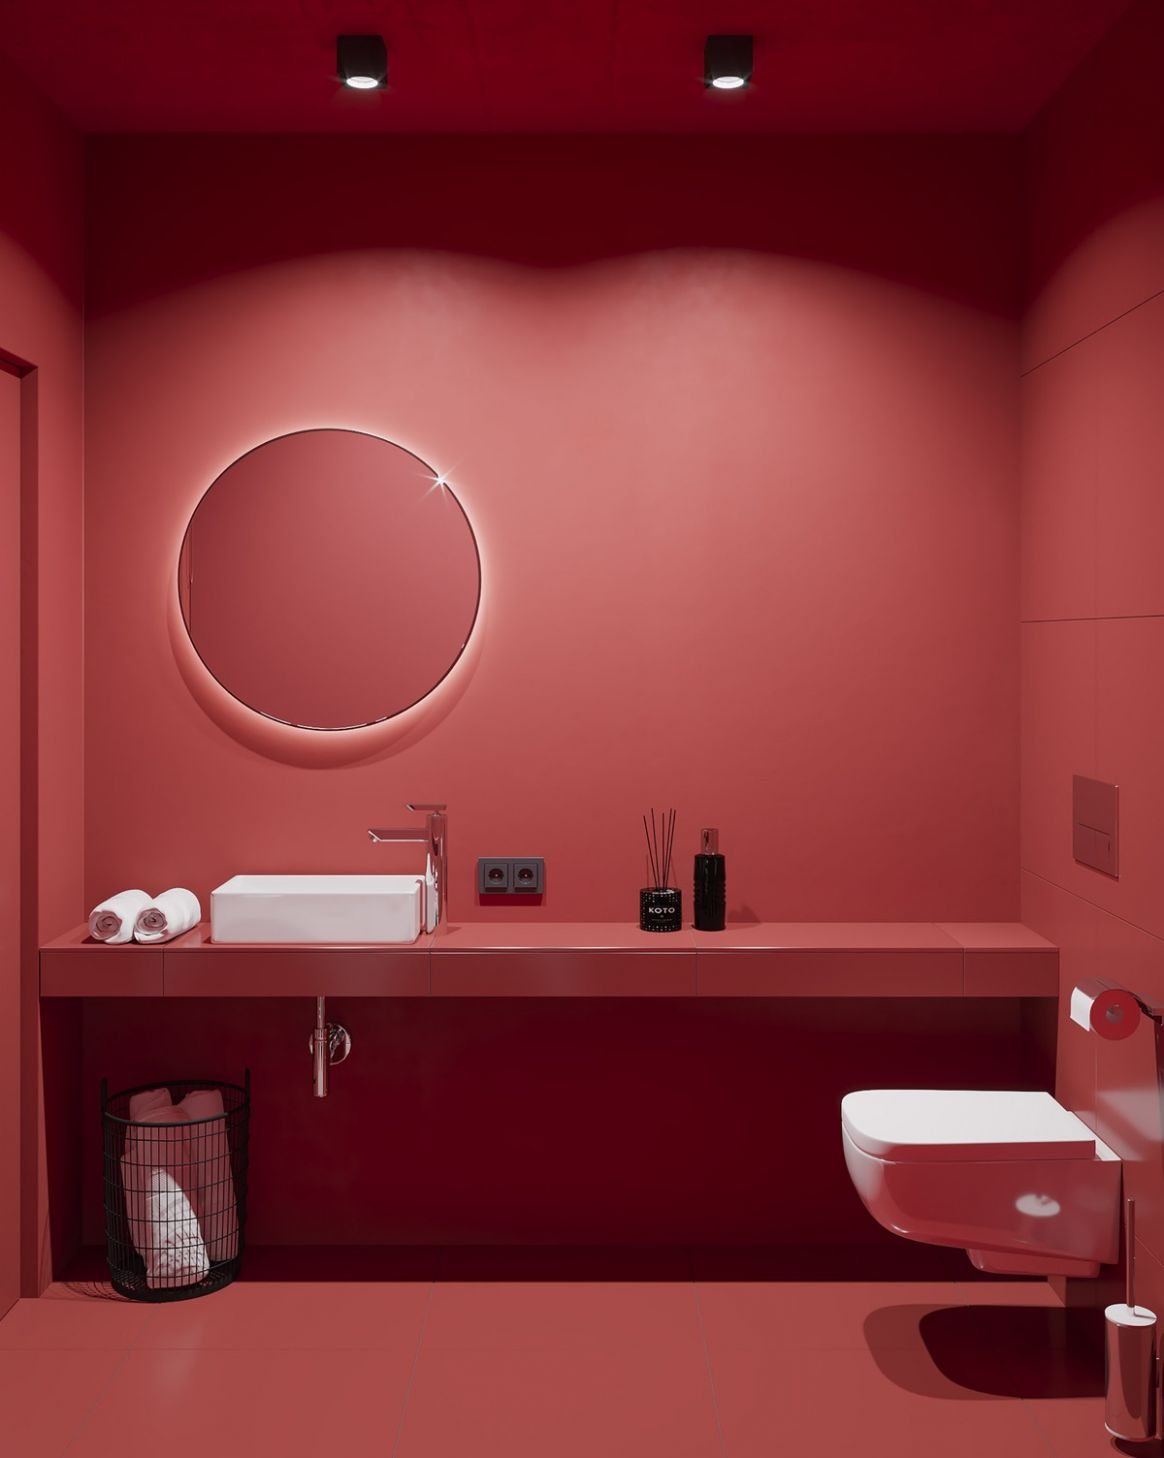 12 Red Bathrooms Design Ideas With Tips To Decorate And ...